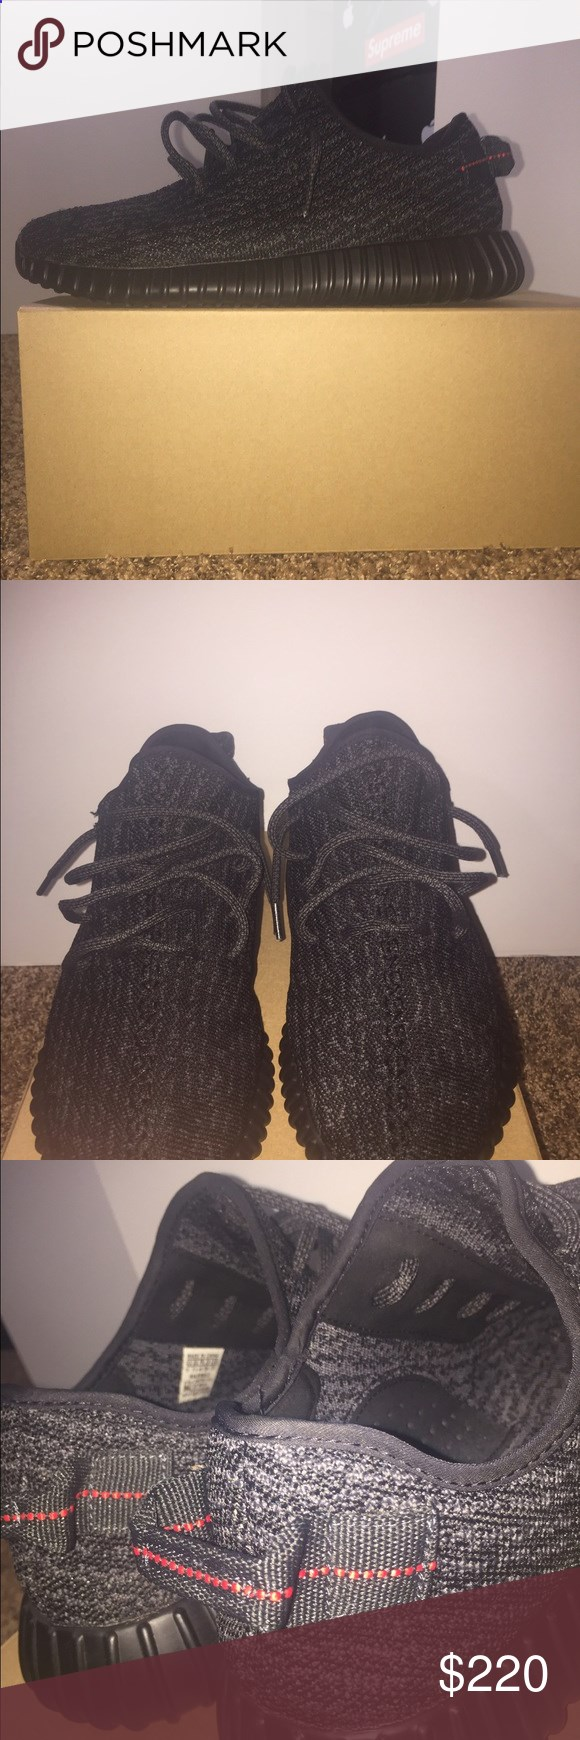 ef29ccdd36e Adidas yeezy boost 350 Pirate black Really good condition got a lot of life  left Yeezy